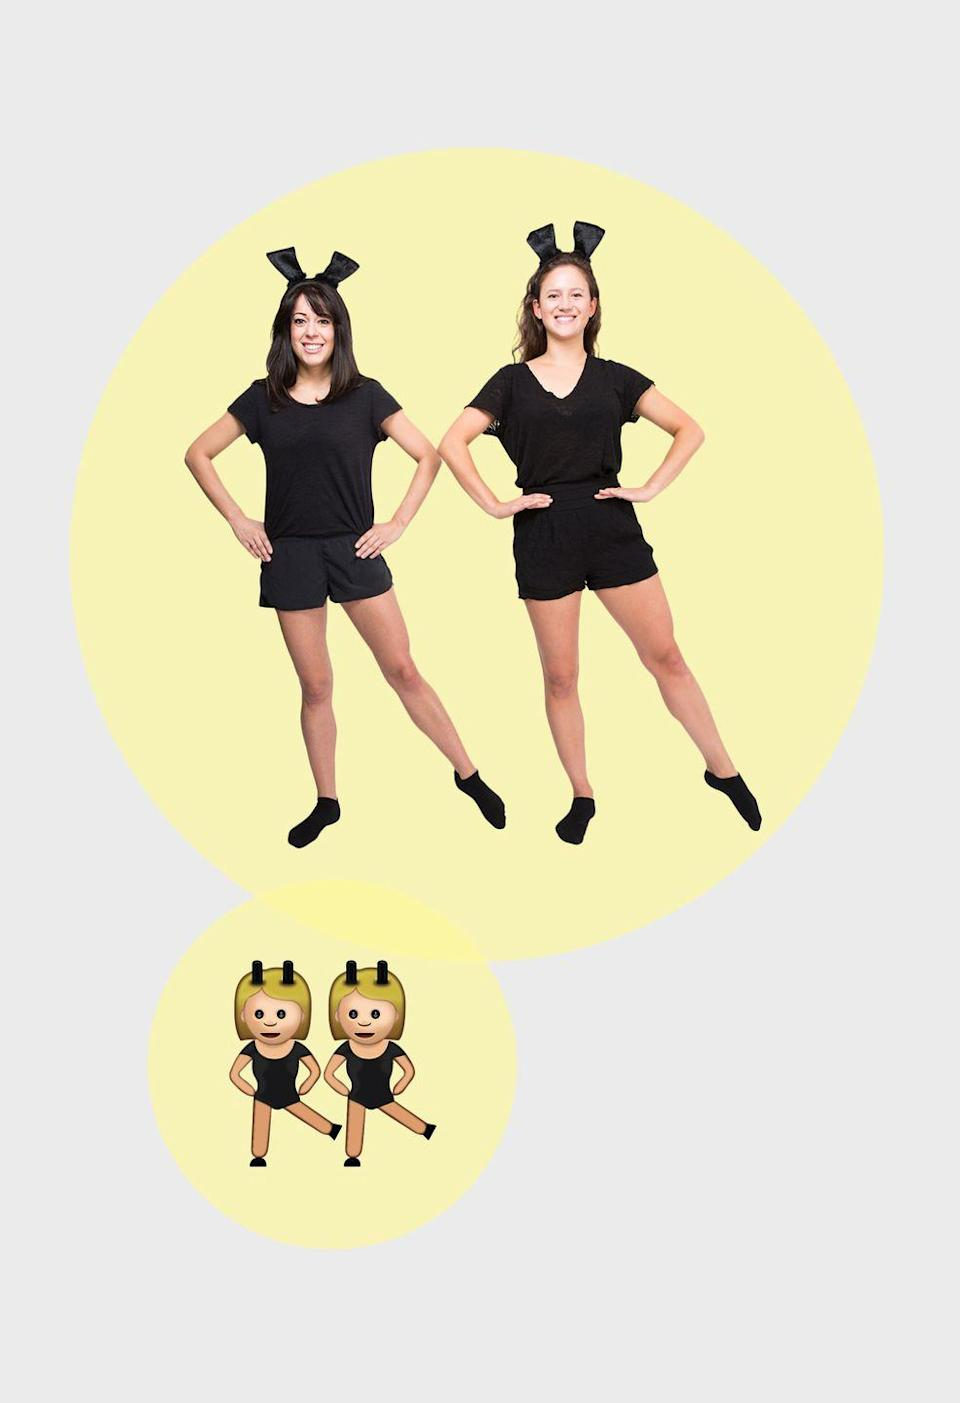 """<p>For a matching costume inspired by your most-used emojis, you need a pair of black tees, black shorts, black socks and black bunny ears that are either folded or cut to get a flat top. </p><p><strong>RELATED</strong>: <a href=""""https://www.goodhousekeeping.com/holidays/halloween-ideas/how-to/g3853/homemade-emoji-costumes/"""" rel=""""nofollow noopener"""" target=""""_blank"""" data-ylk=""""slk:Homemade Emoji Costume Ideas That Are Perfect for Halloween"""" class=""""link rapid-noclick-resp"""">Homemade Emoji Costume Ideas That Are Perfect for Halloween</a></p>"""